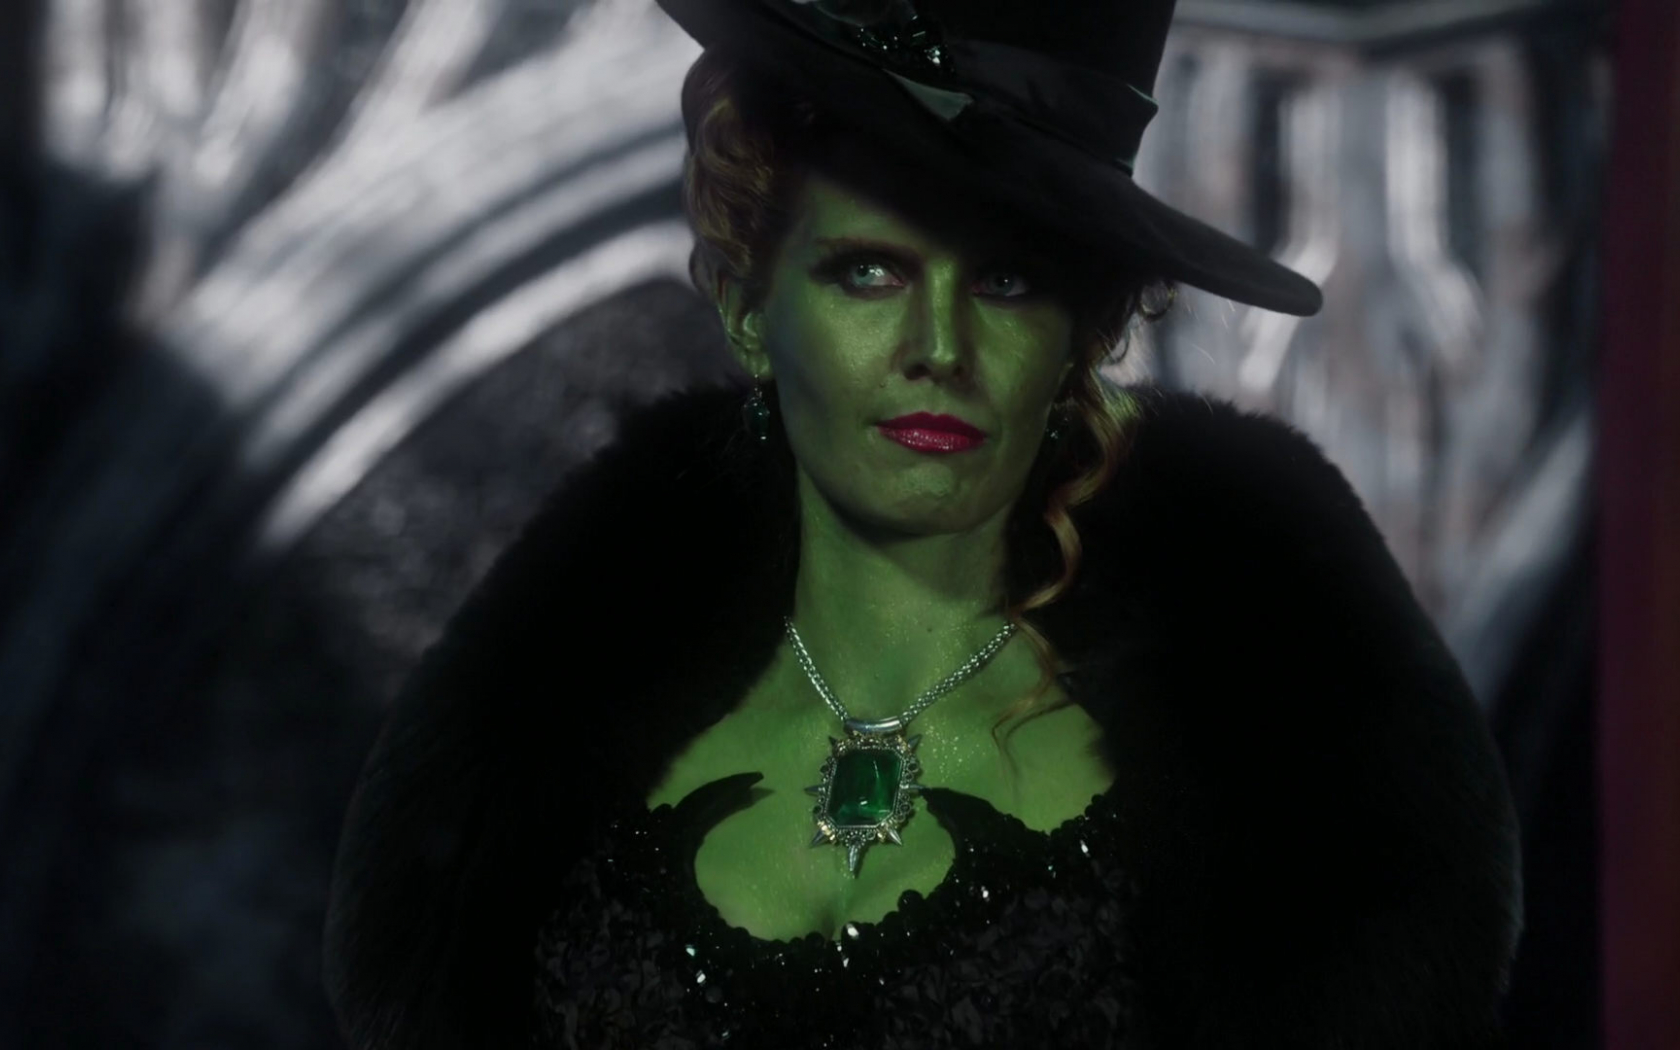 Free Download The Wicked Witch Of The West Images Zelenawicked